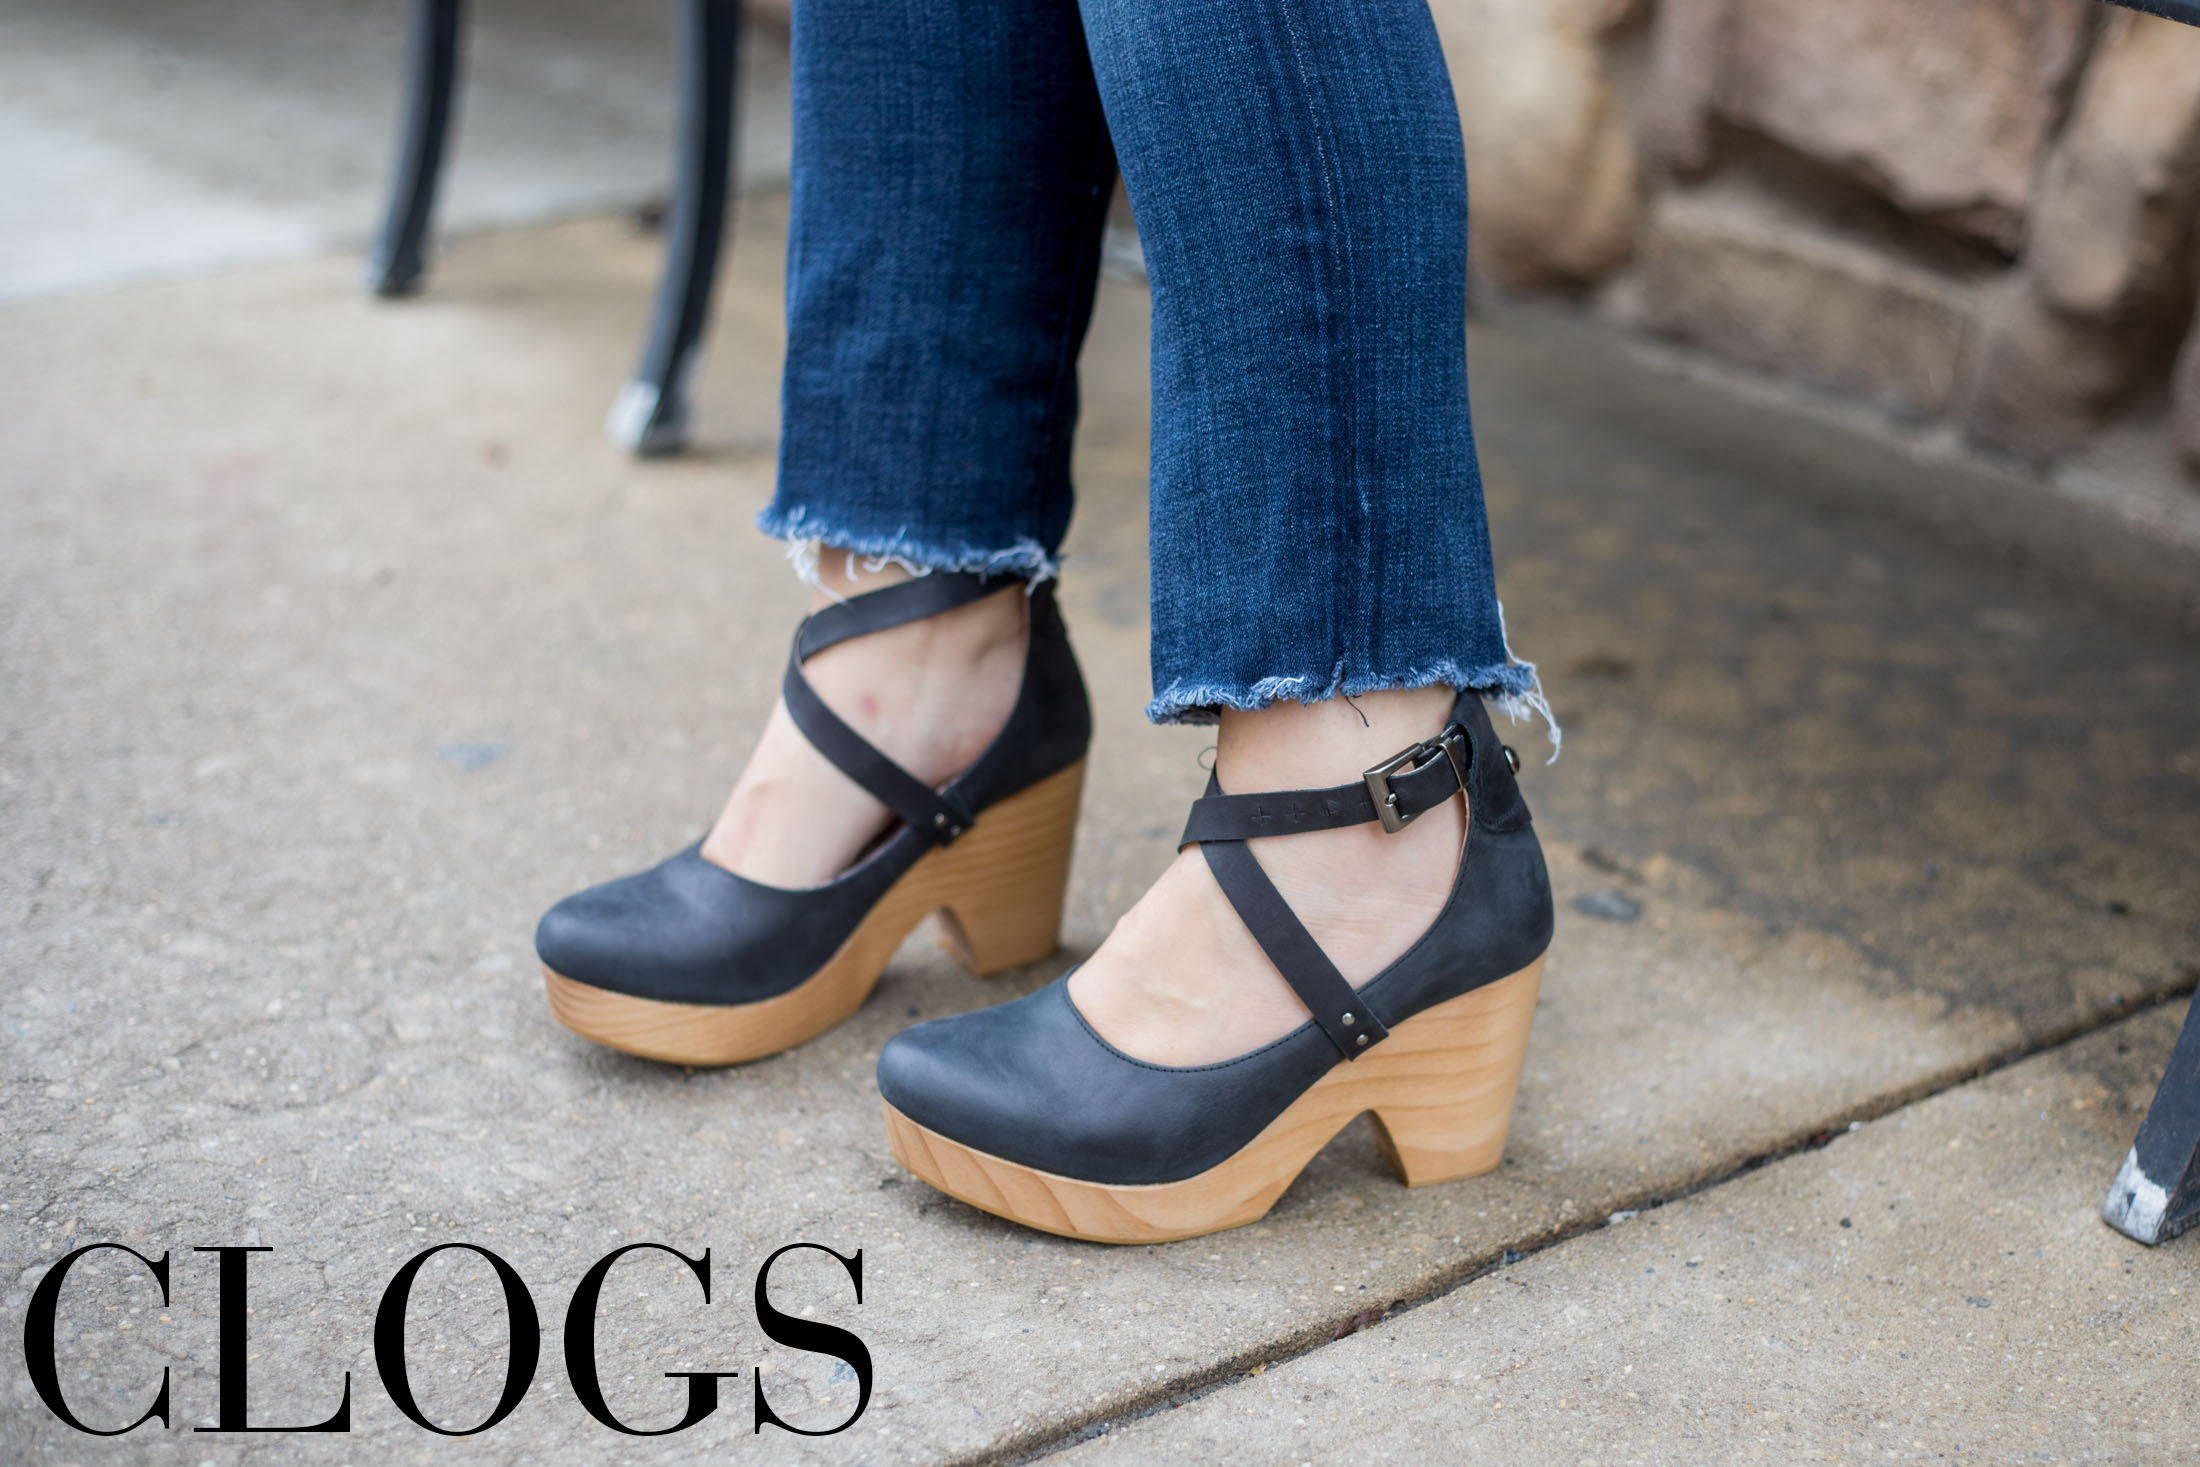 Stylish, comfortable shoes recommended by The Mom Edit